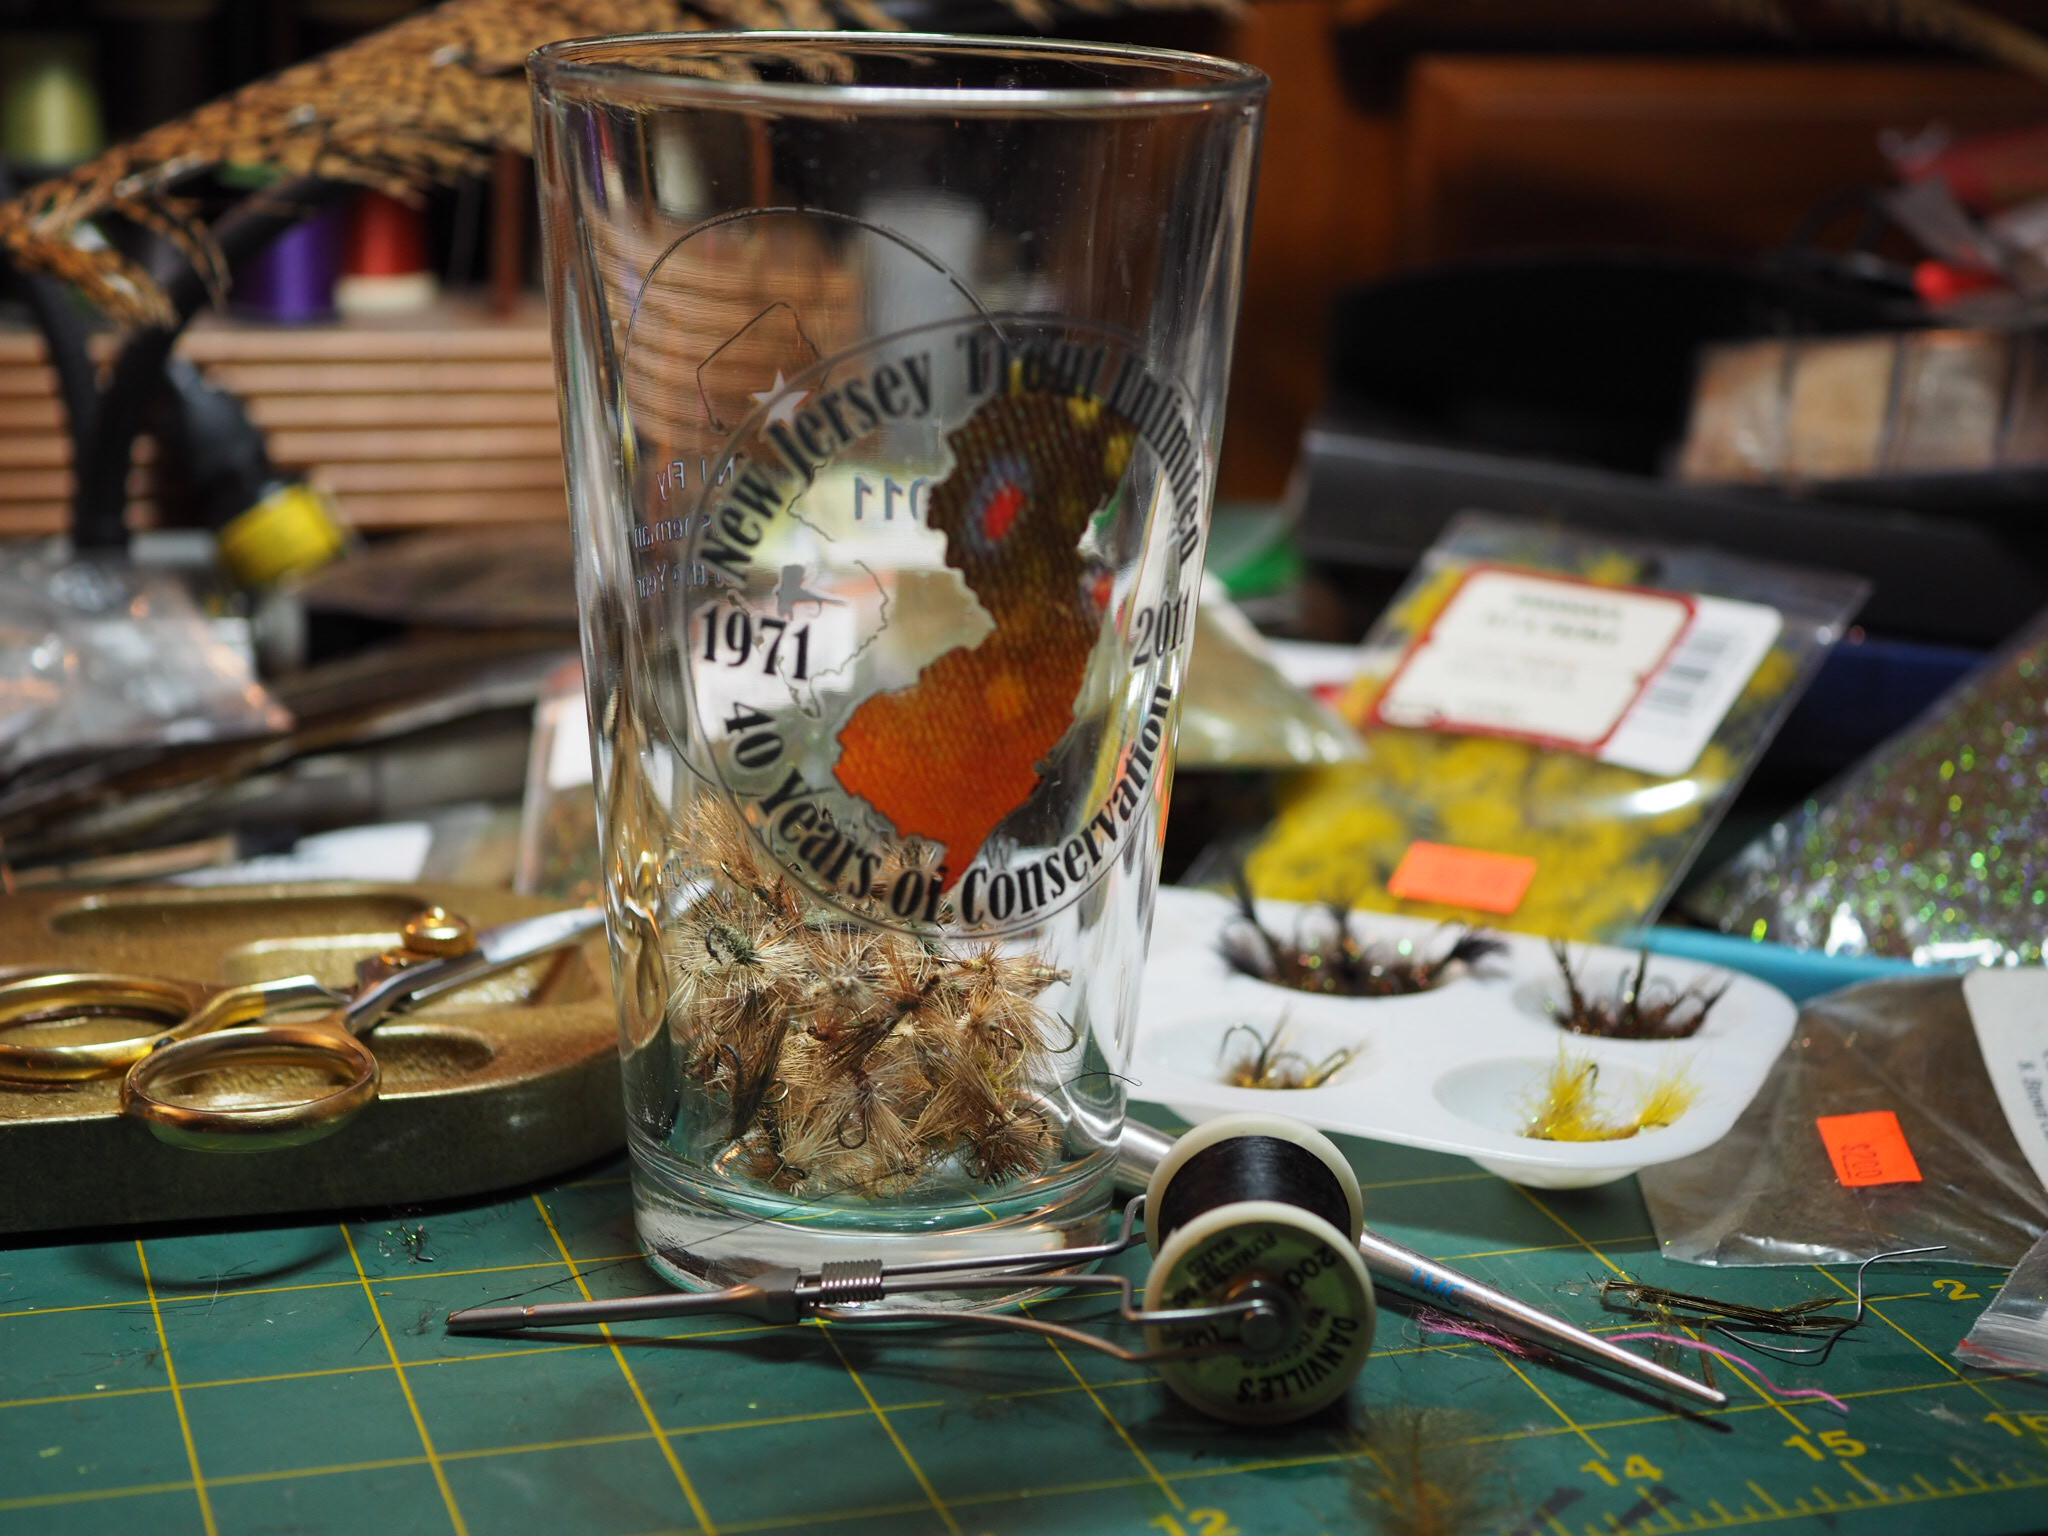 My current bluegill cup.